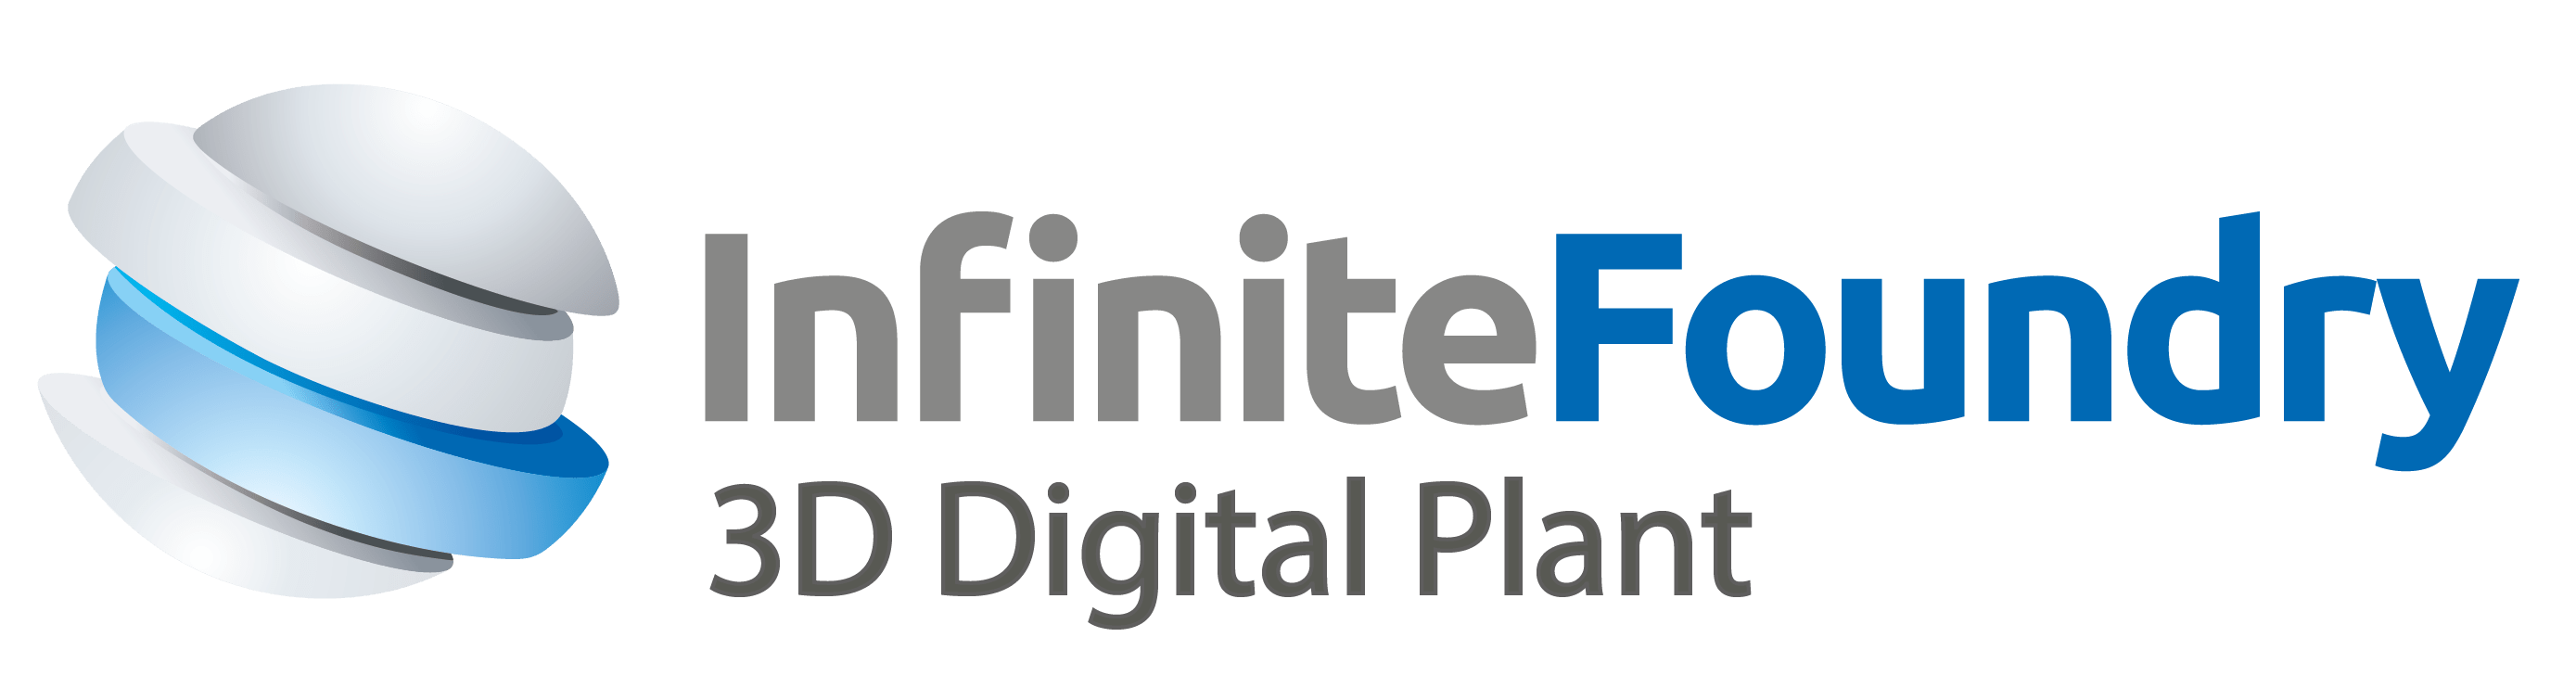 Infinite Foundry – 3D Digital Plant